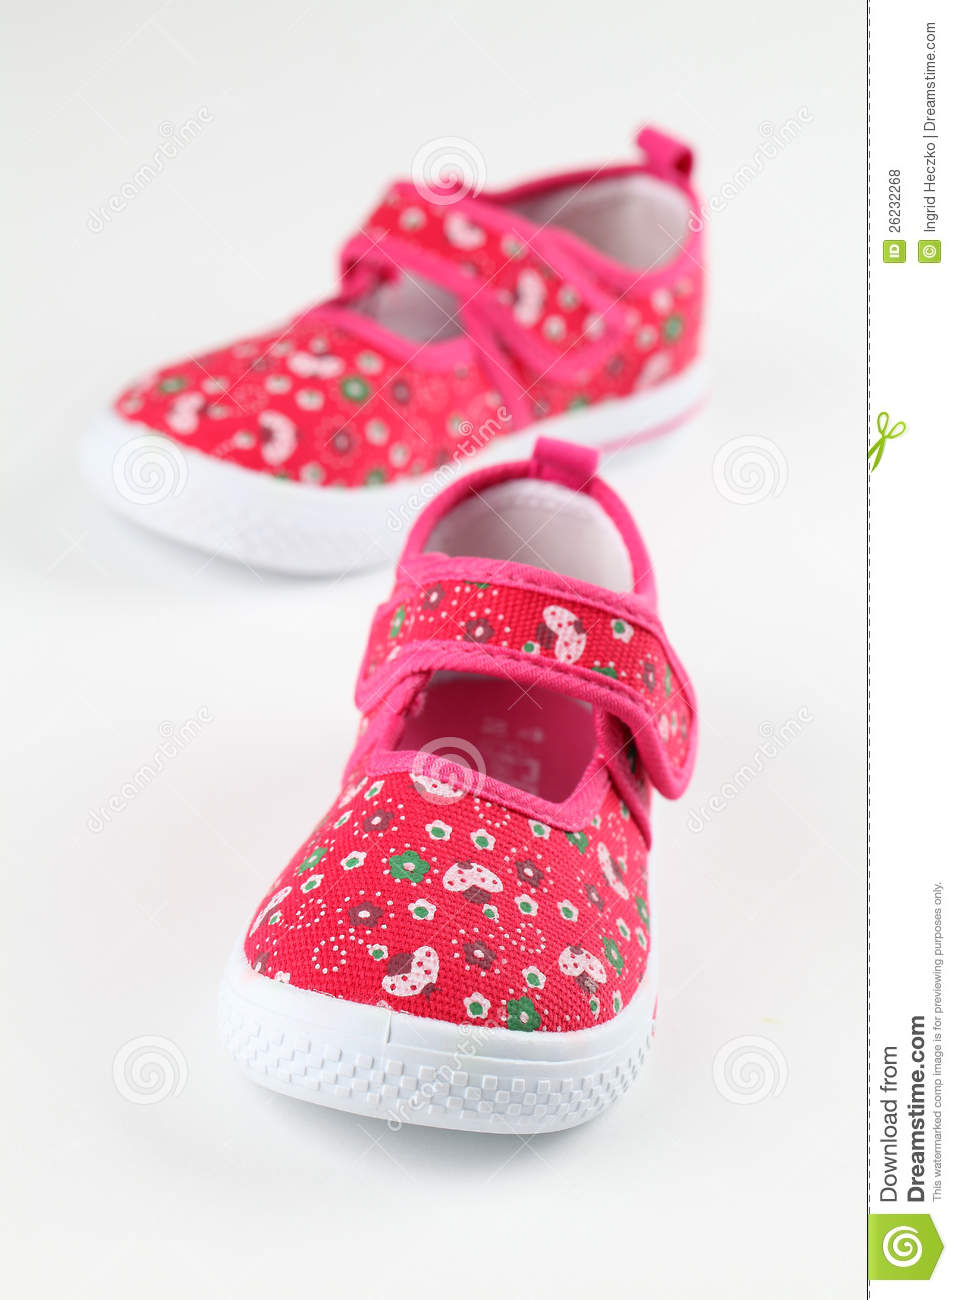 Royalty Free Stock Photos: Red baby shoes